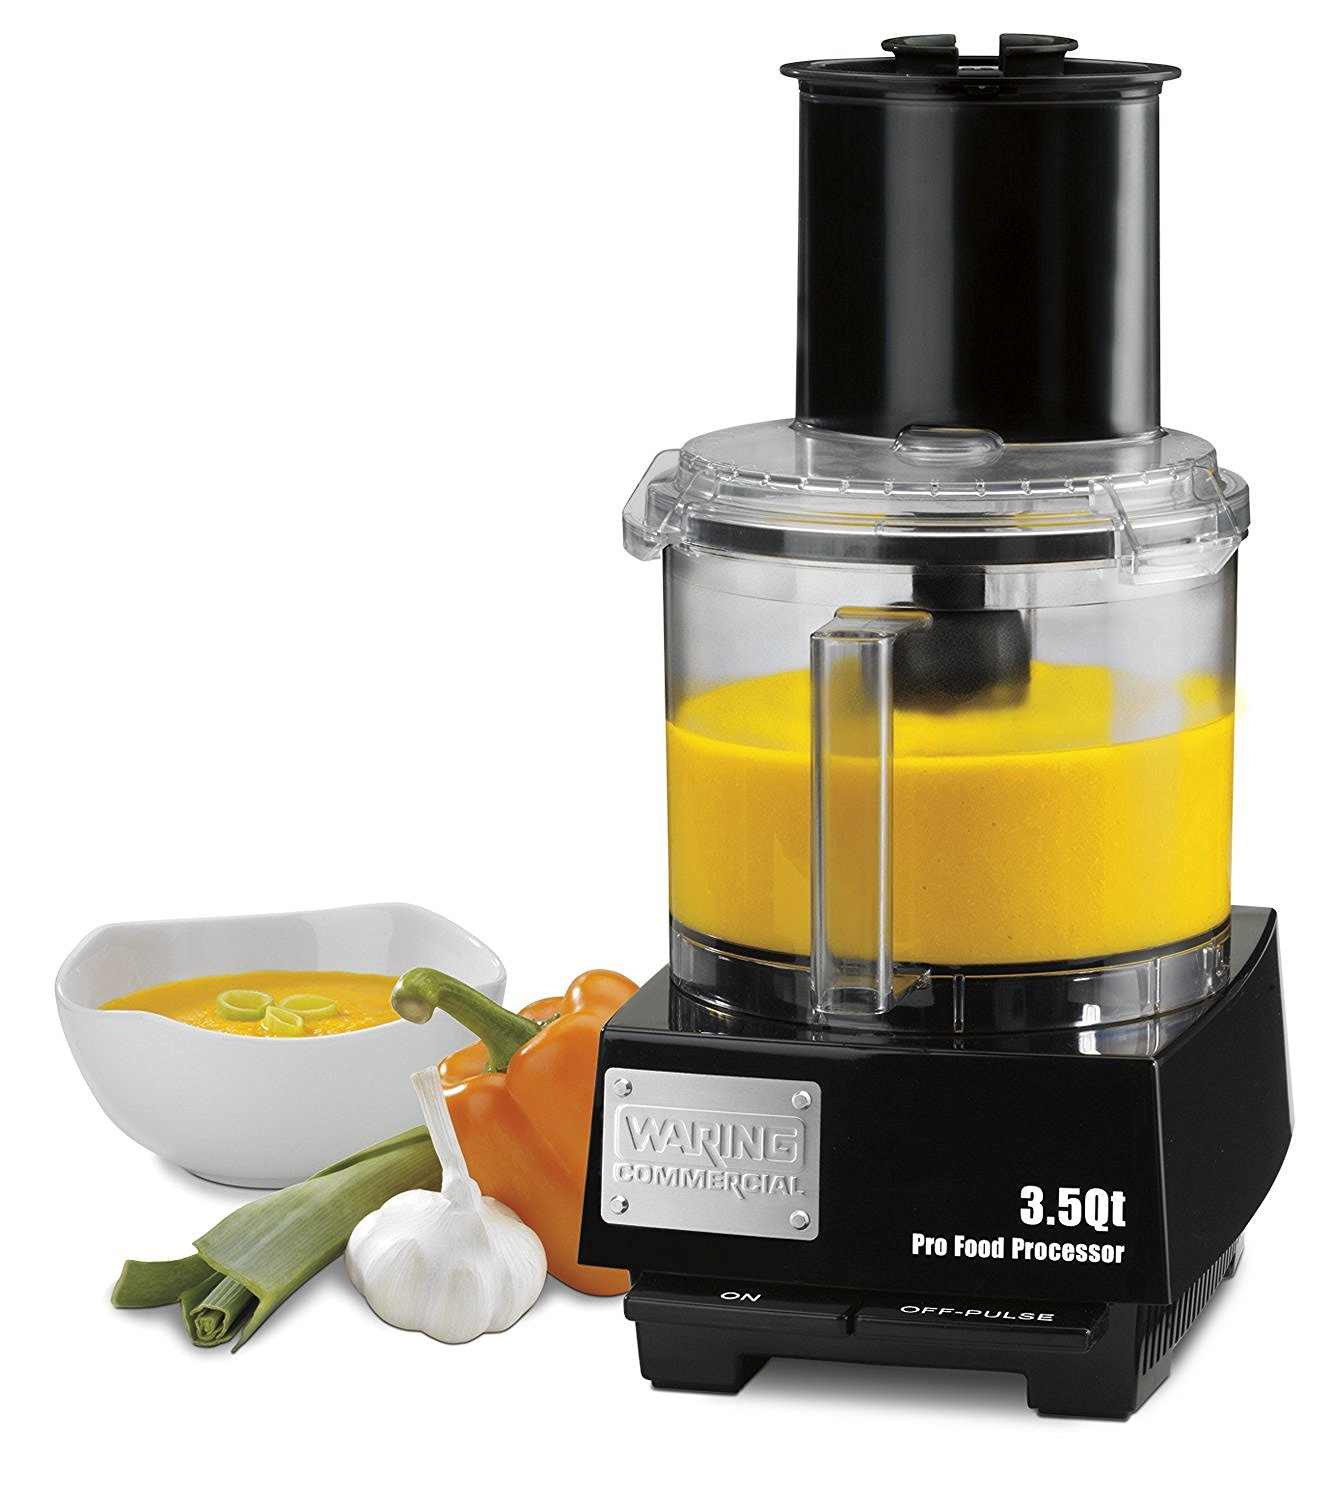 Features To Consider When Buying A Food Processor